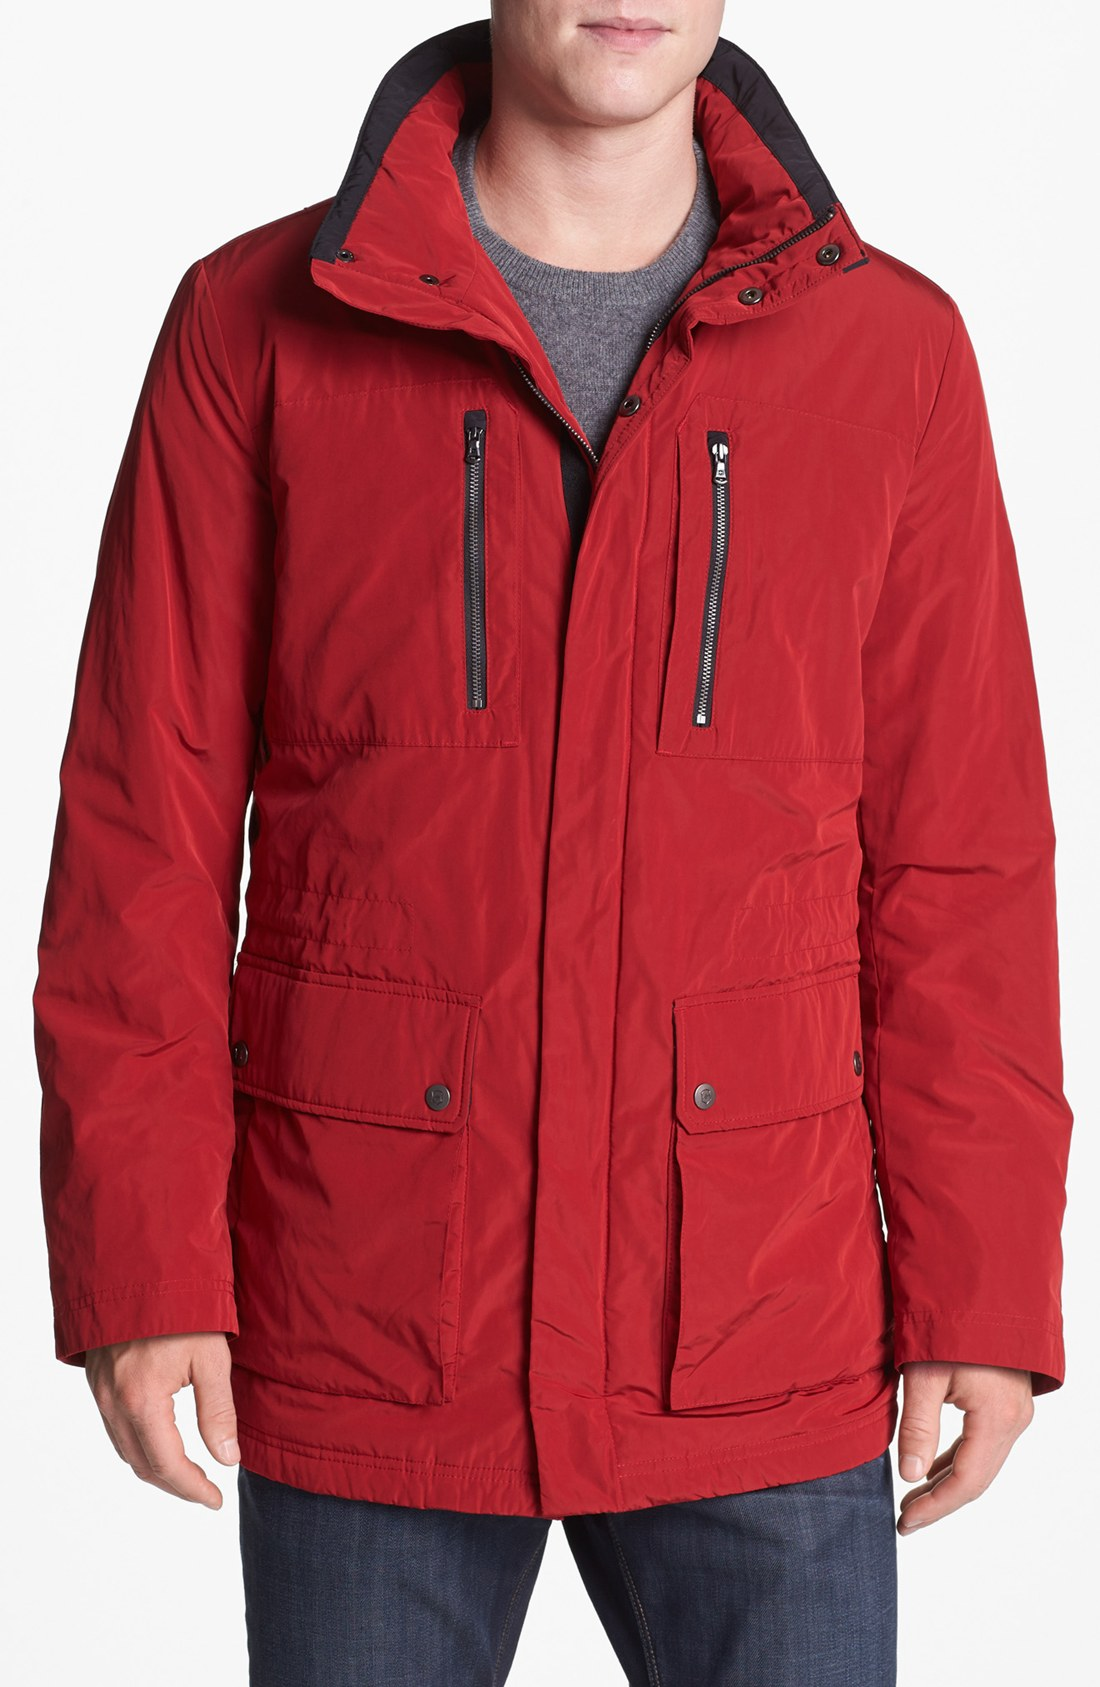 Victorinox Explorer Jacket In Red For Men Ibach Red Lyst